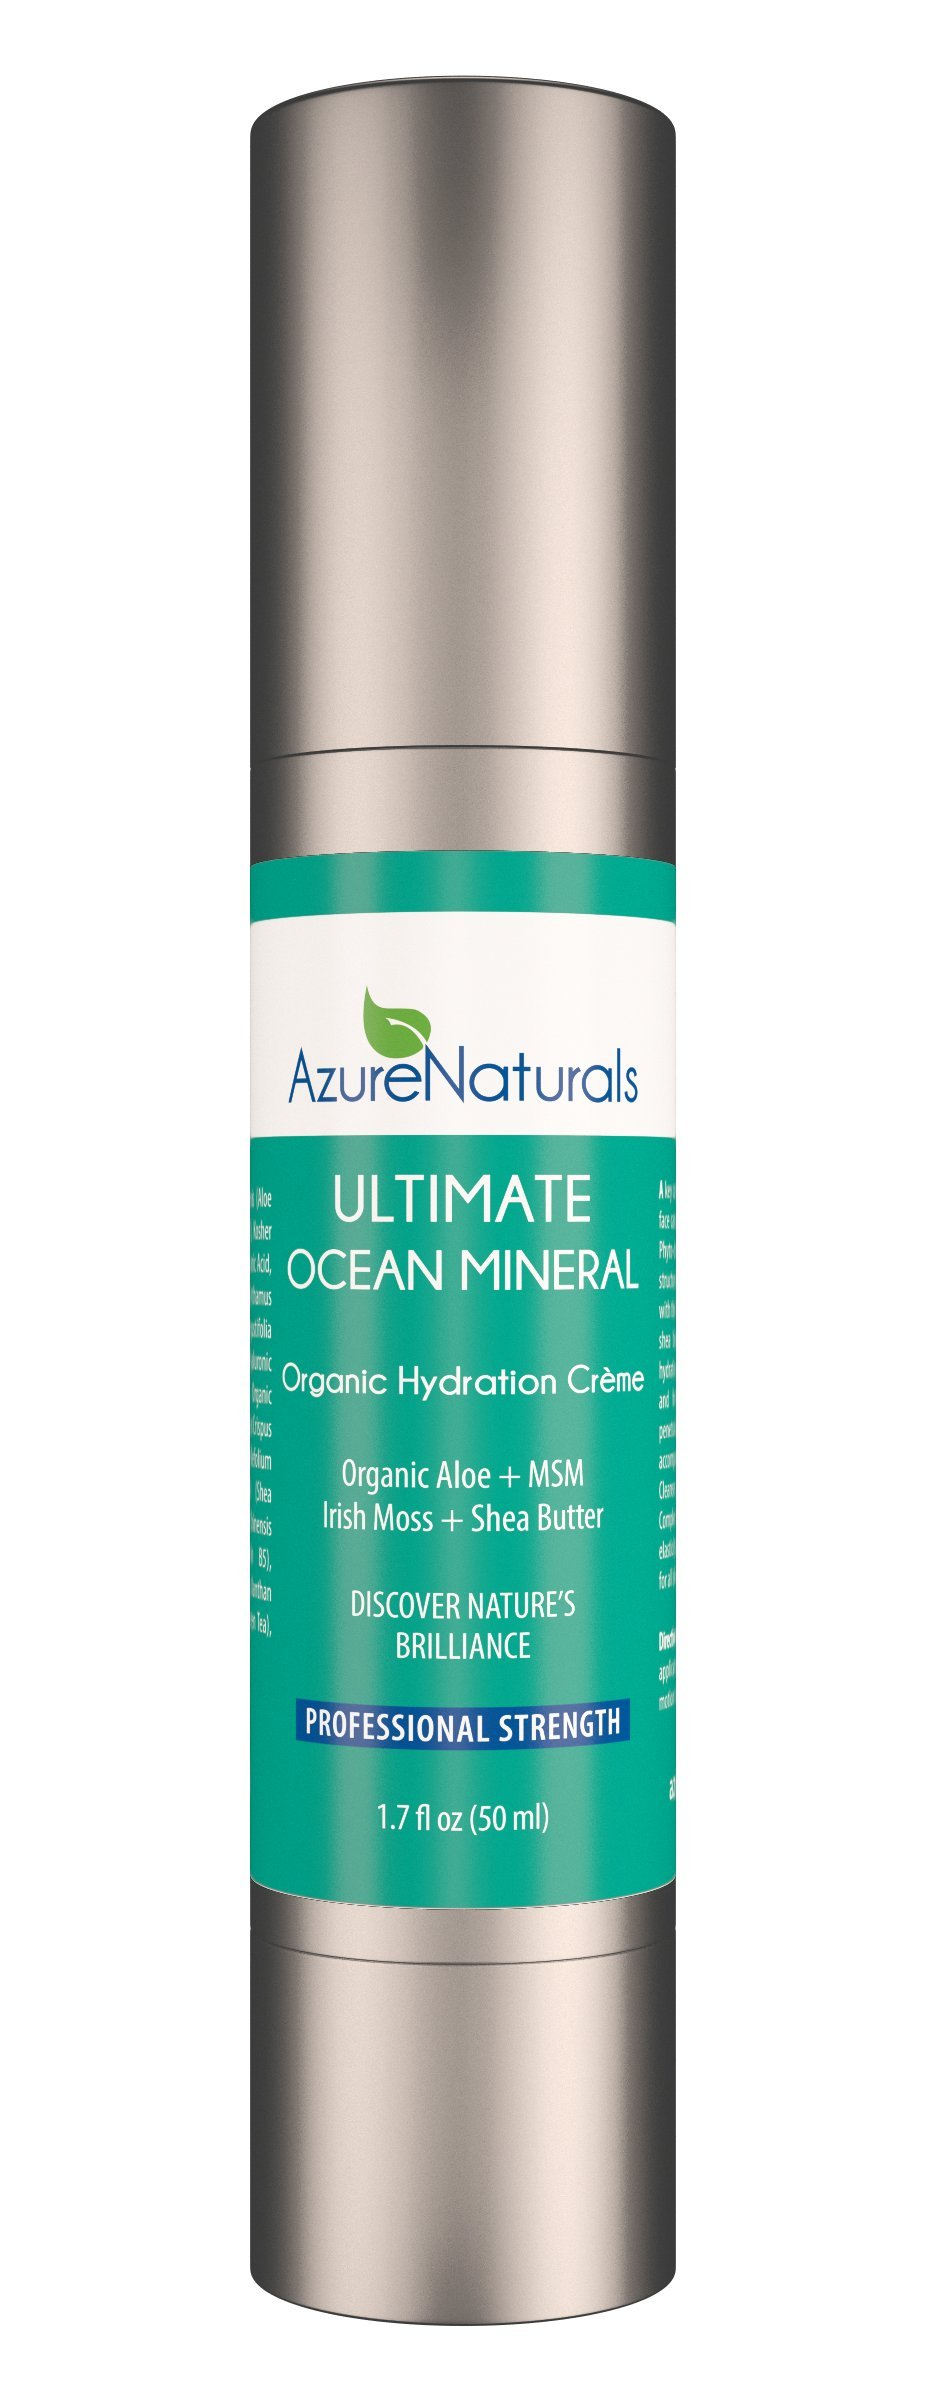 ULTIMATE OCEAN Mineral Hydration Creme Anti Aging Facial Moisturizer, 90+ Ocean Minerals, Blue Green Algae + Irish Moss + Hyaluronic Acid Will Repair, Rejuvenate, Deeply Hydrate Your Skin!